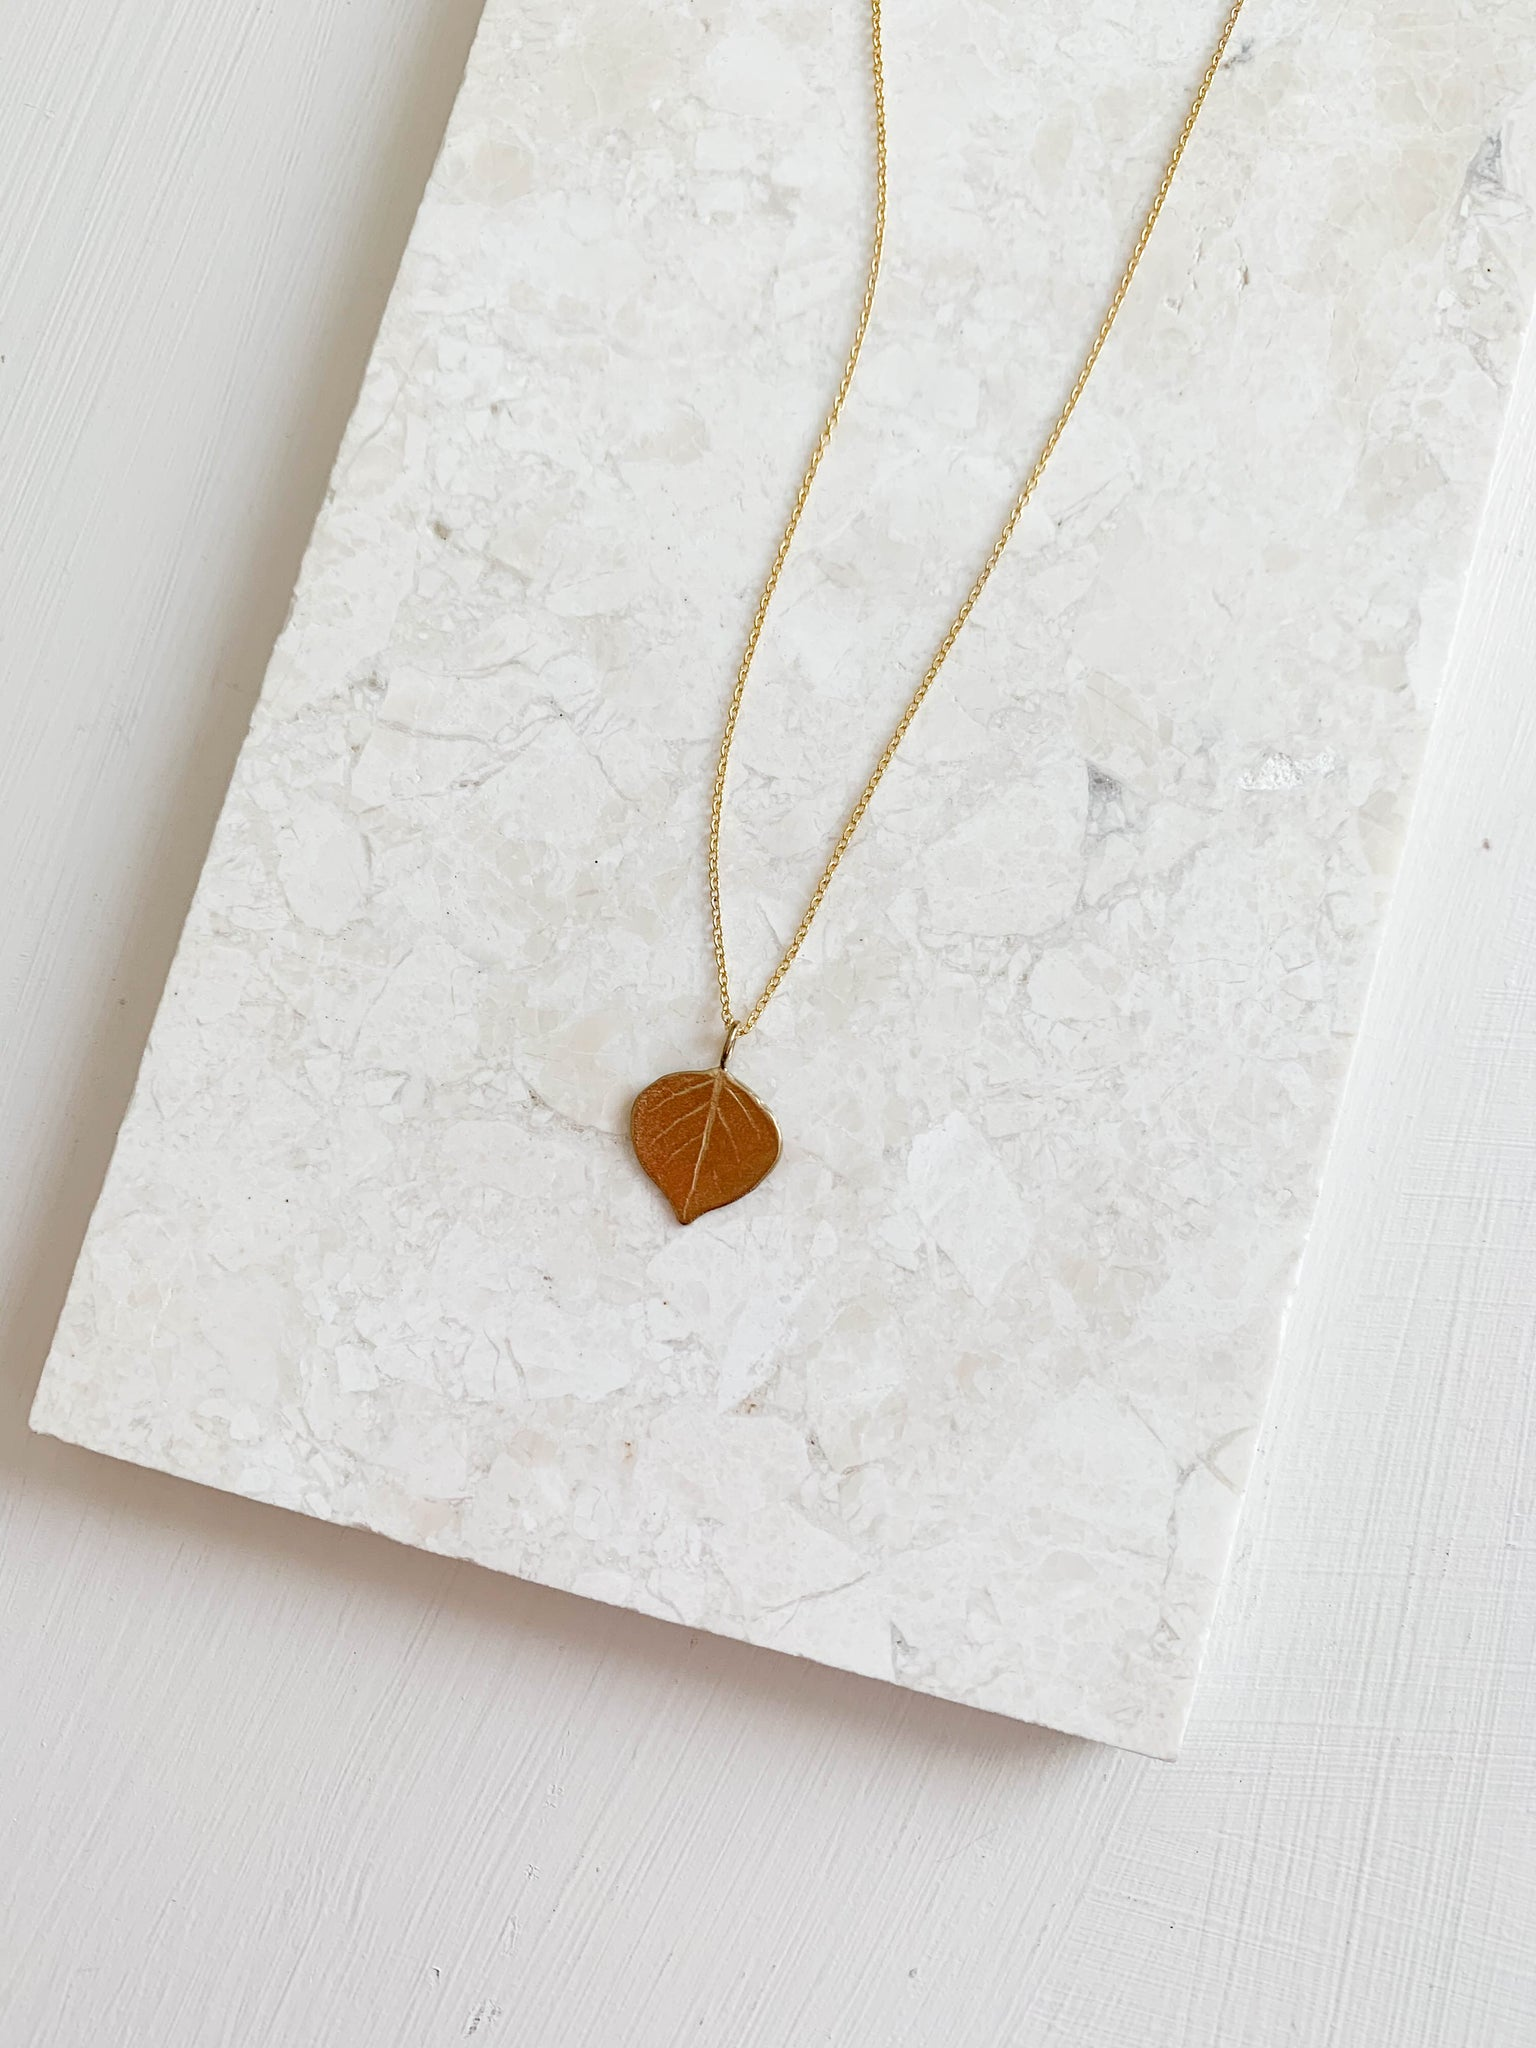 Aspen Leaf Necklace